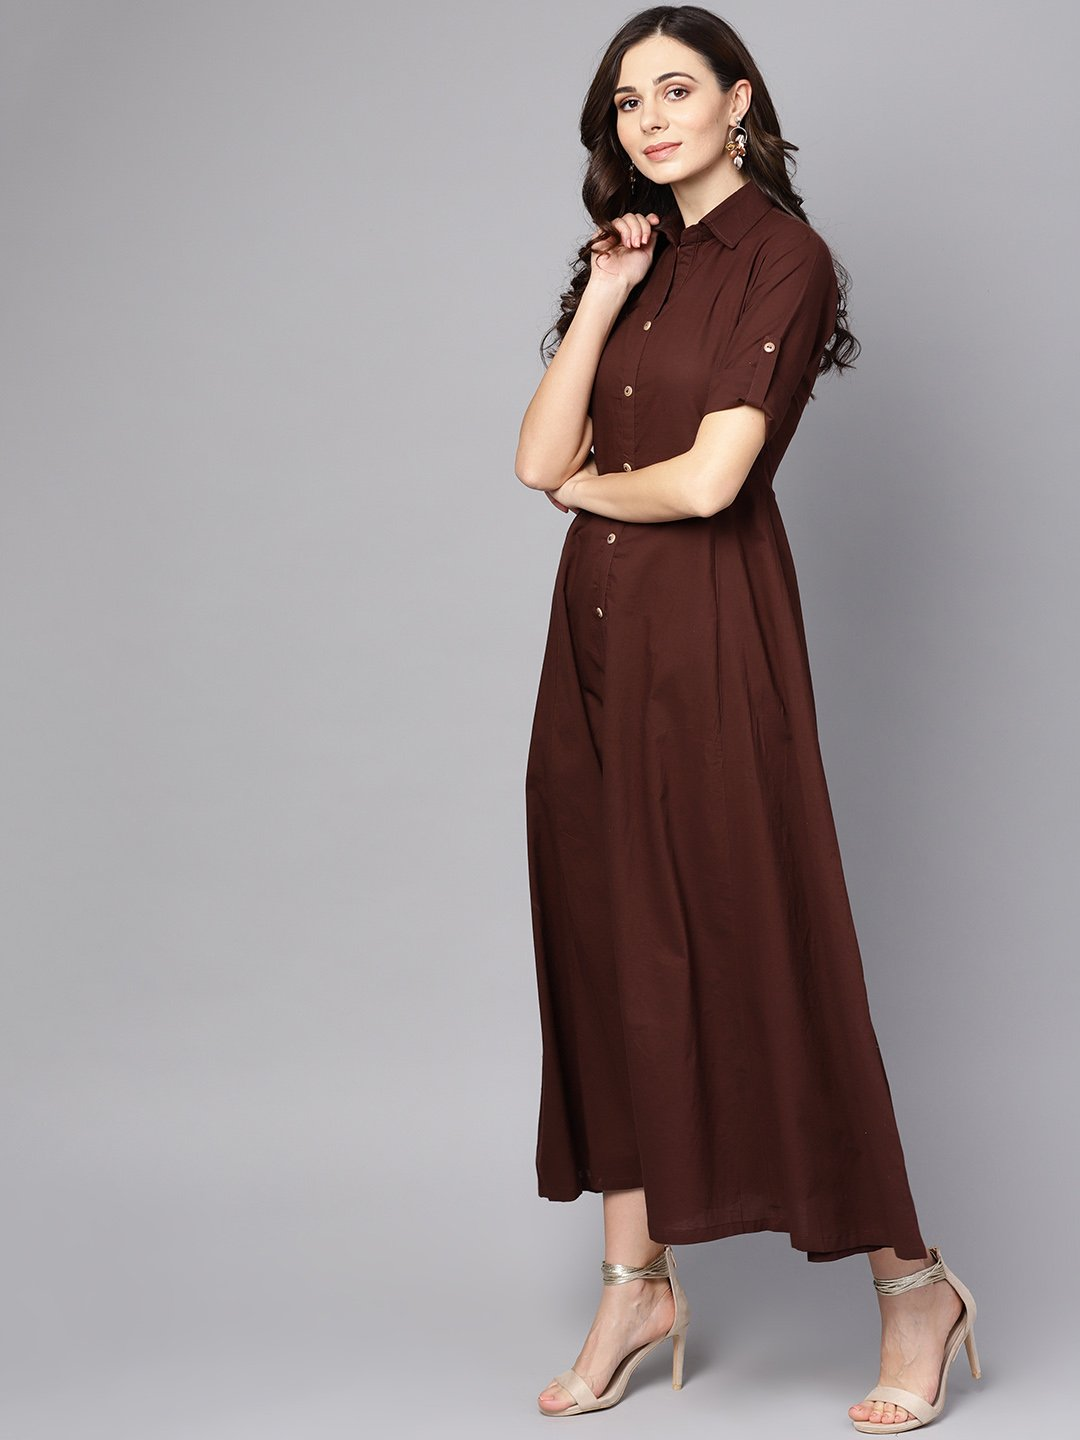 Solid Chocolate Brown Maxi Dress with Shirt Collar & 3/4 sleeves